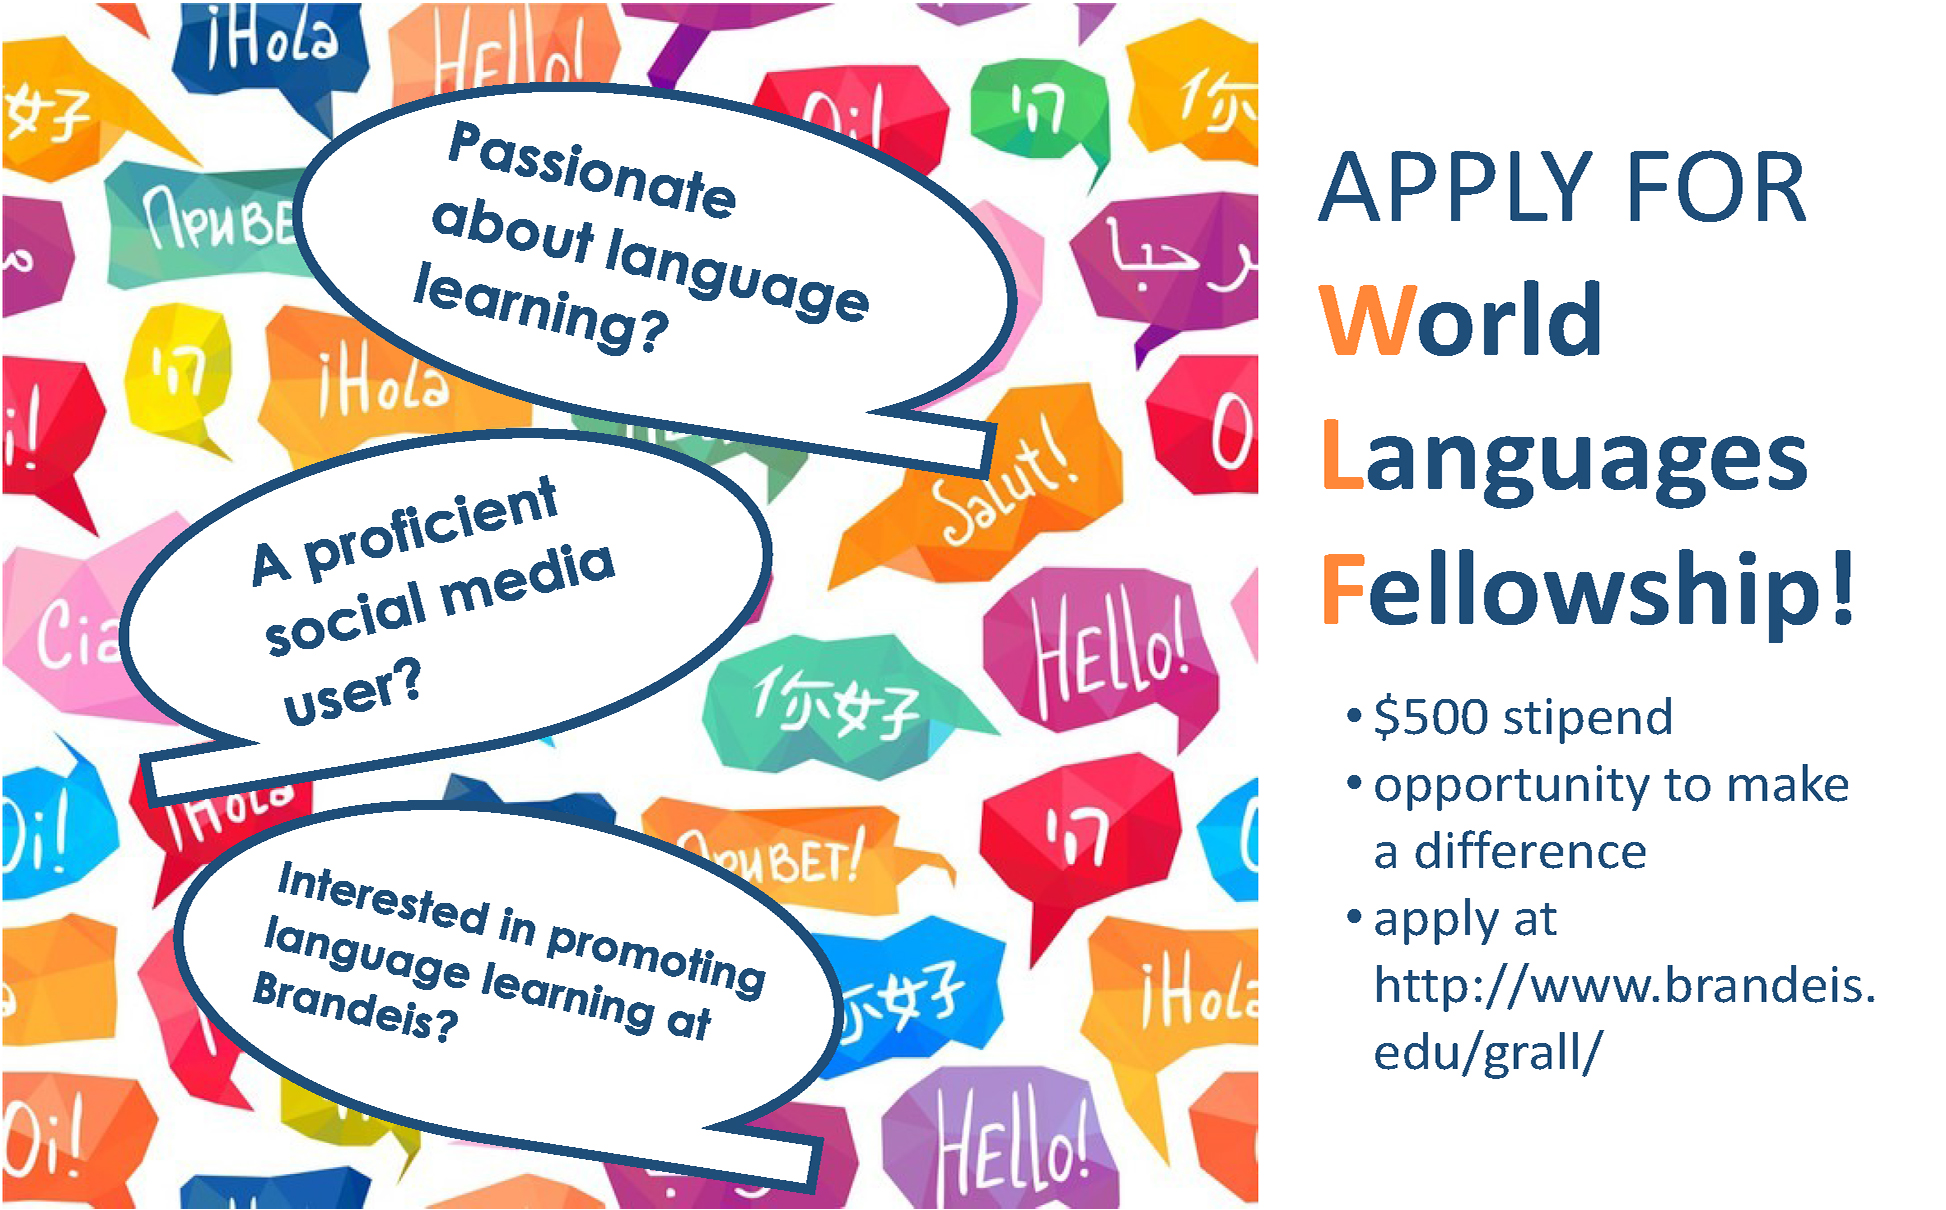 image of poster advertising World Languages Fellowship. text reads: passionate about language learning? a proficient social media user? interested in promoting language learning at Brandeis? Apply for World Languages Fellowship! $500 stiped, opportunity to make a difference, apply at http://www.brandeis.edu/grall